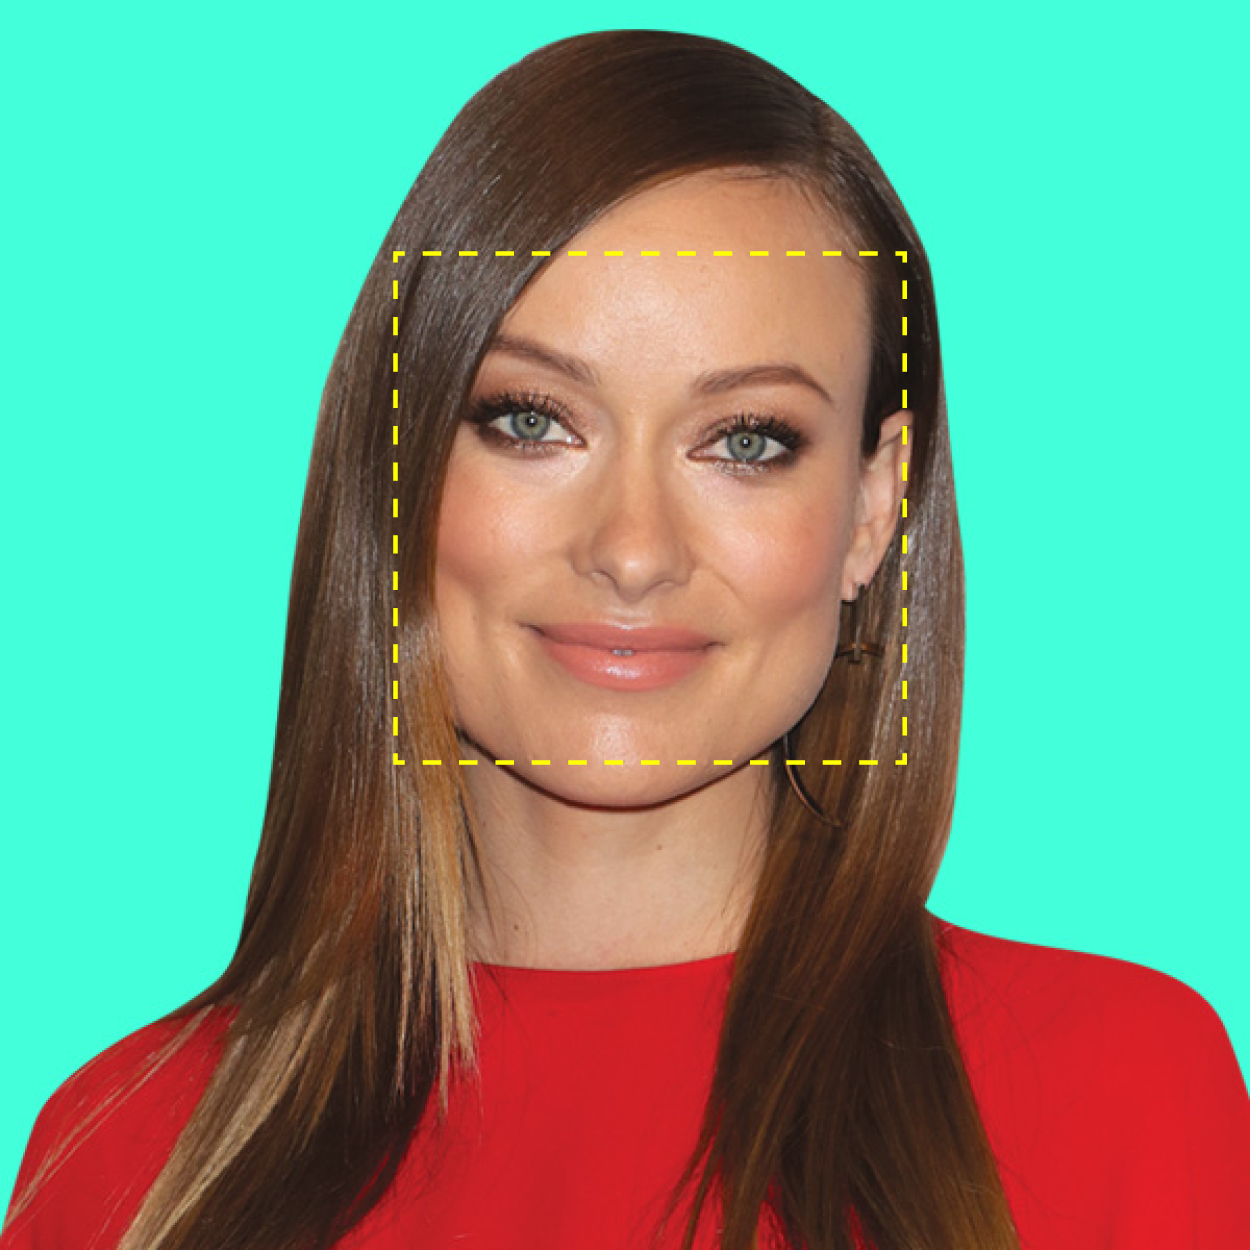 <p>If your face is square or rectangularshaped…</p>